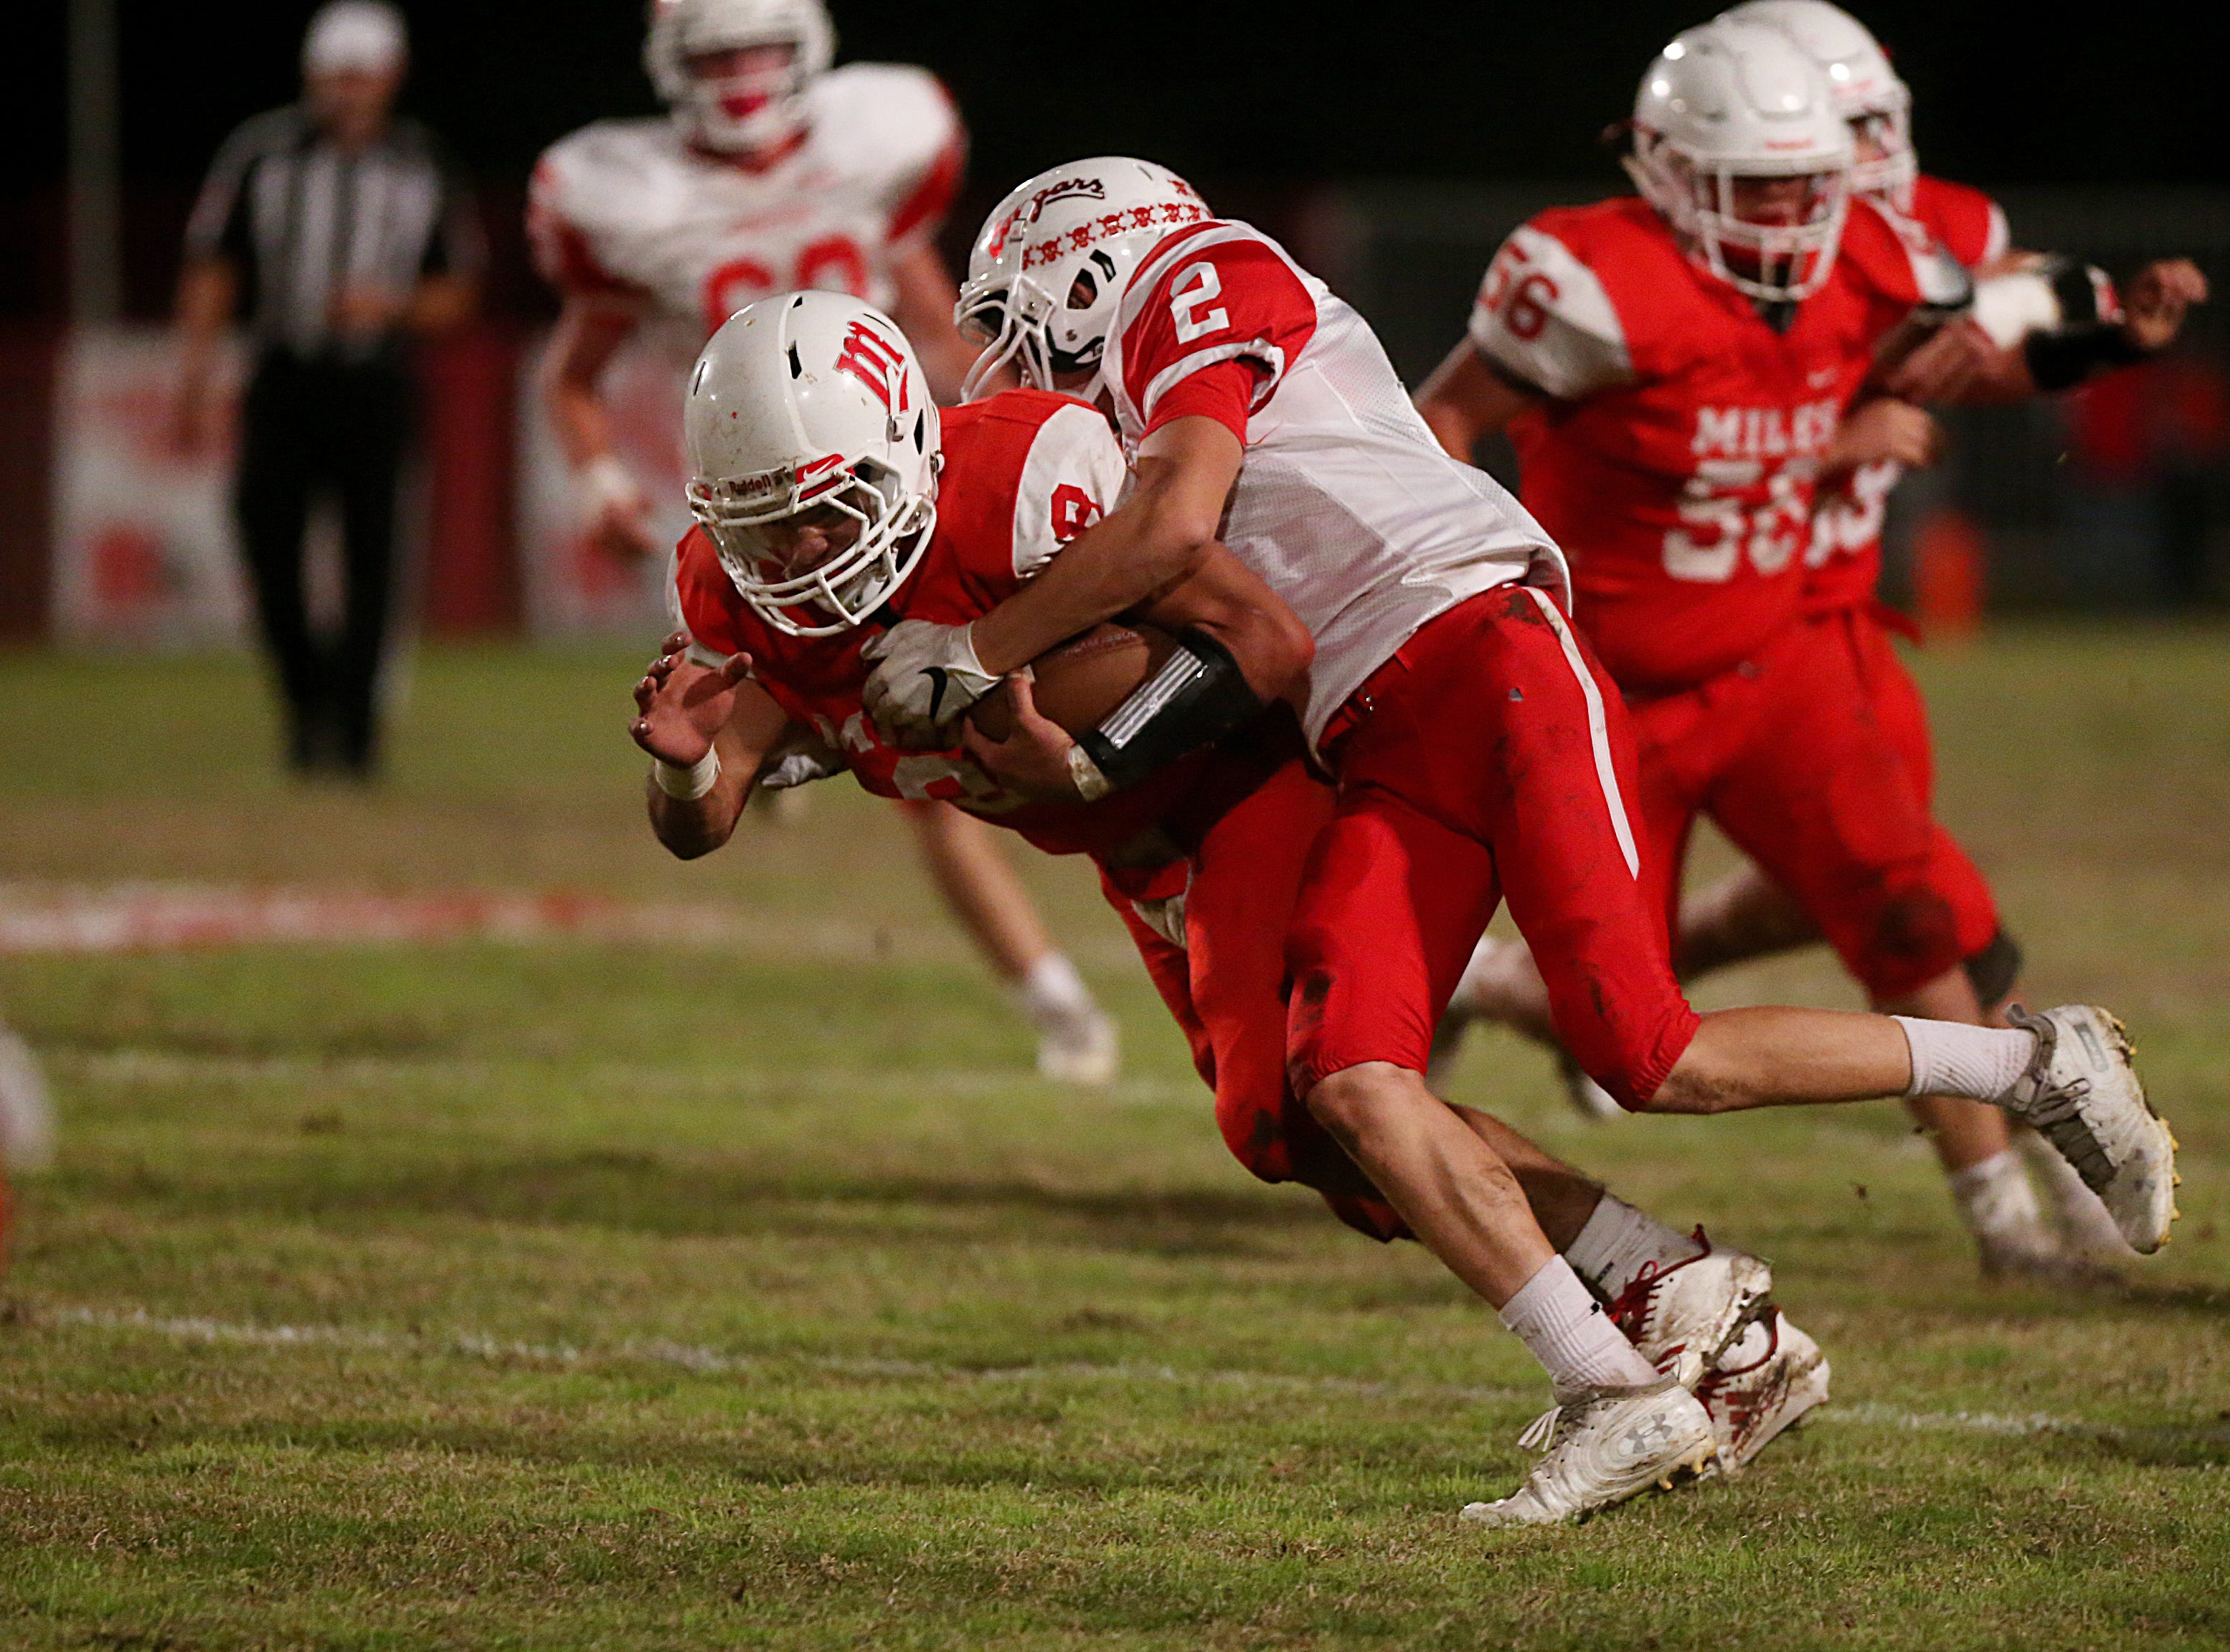 Miles' Jared Flores (#8) is tackled by Christoval's Beau Jolly (#2) Friday, Nov. 2, 2018 during their game in Miles.